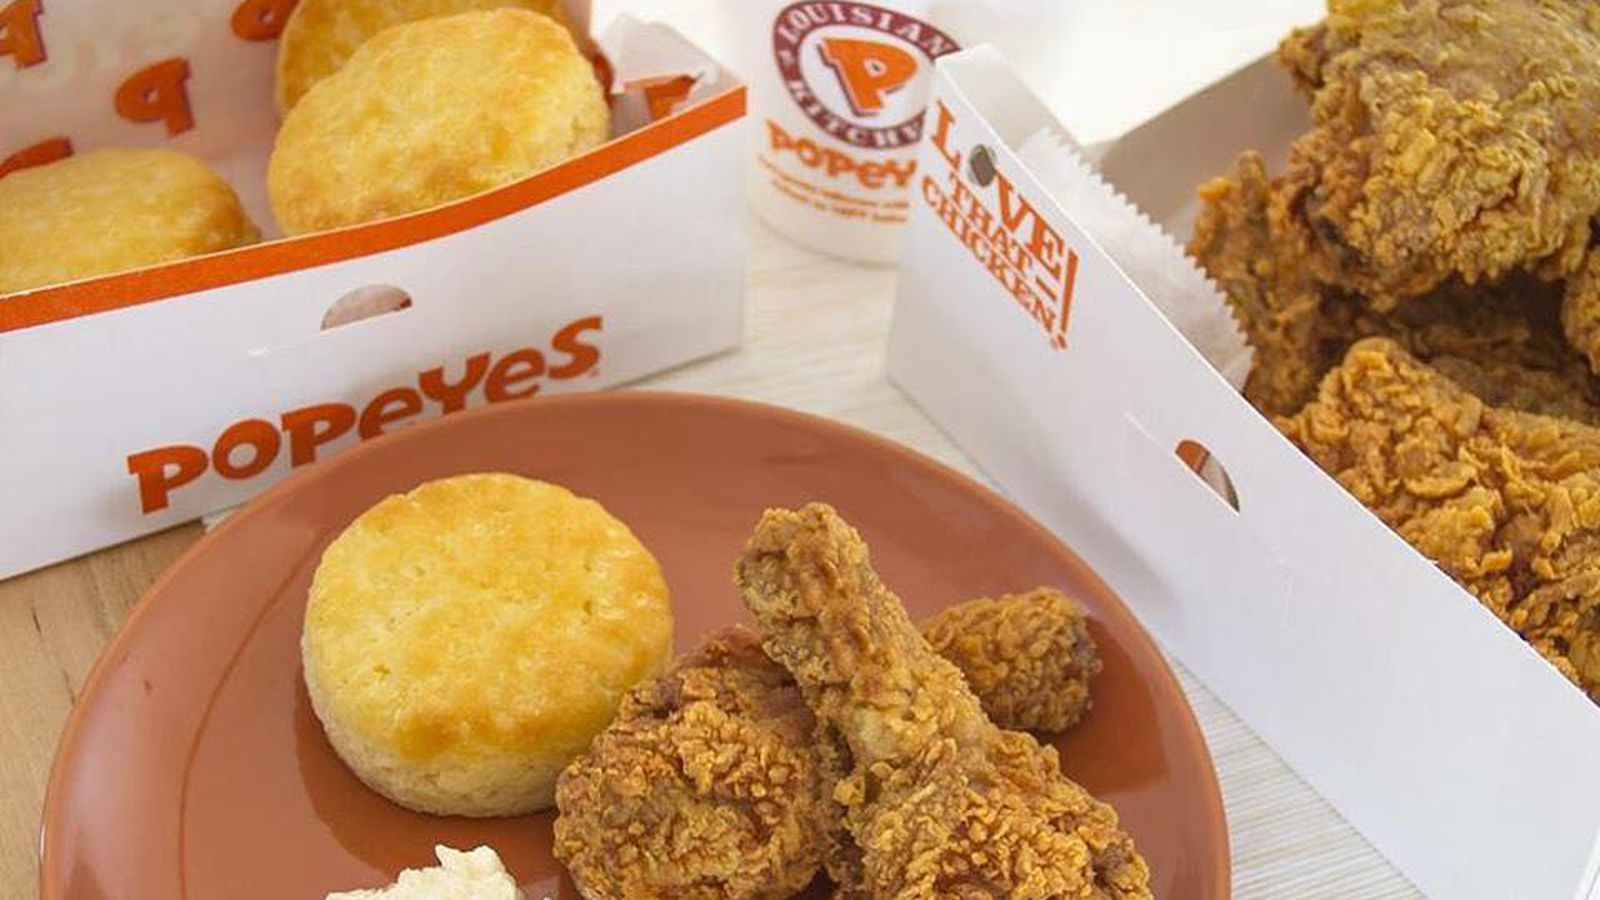 39 popeyes doesn 39 t even qualify as fast food 39 in new orleans for Popeyes louisiana kitchen austin tx